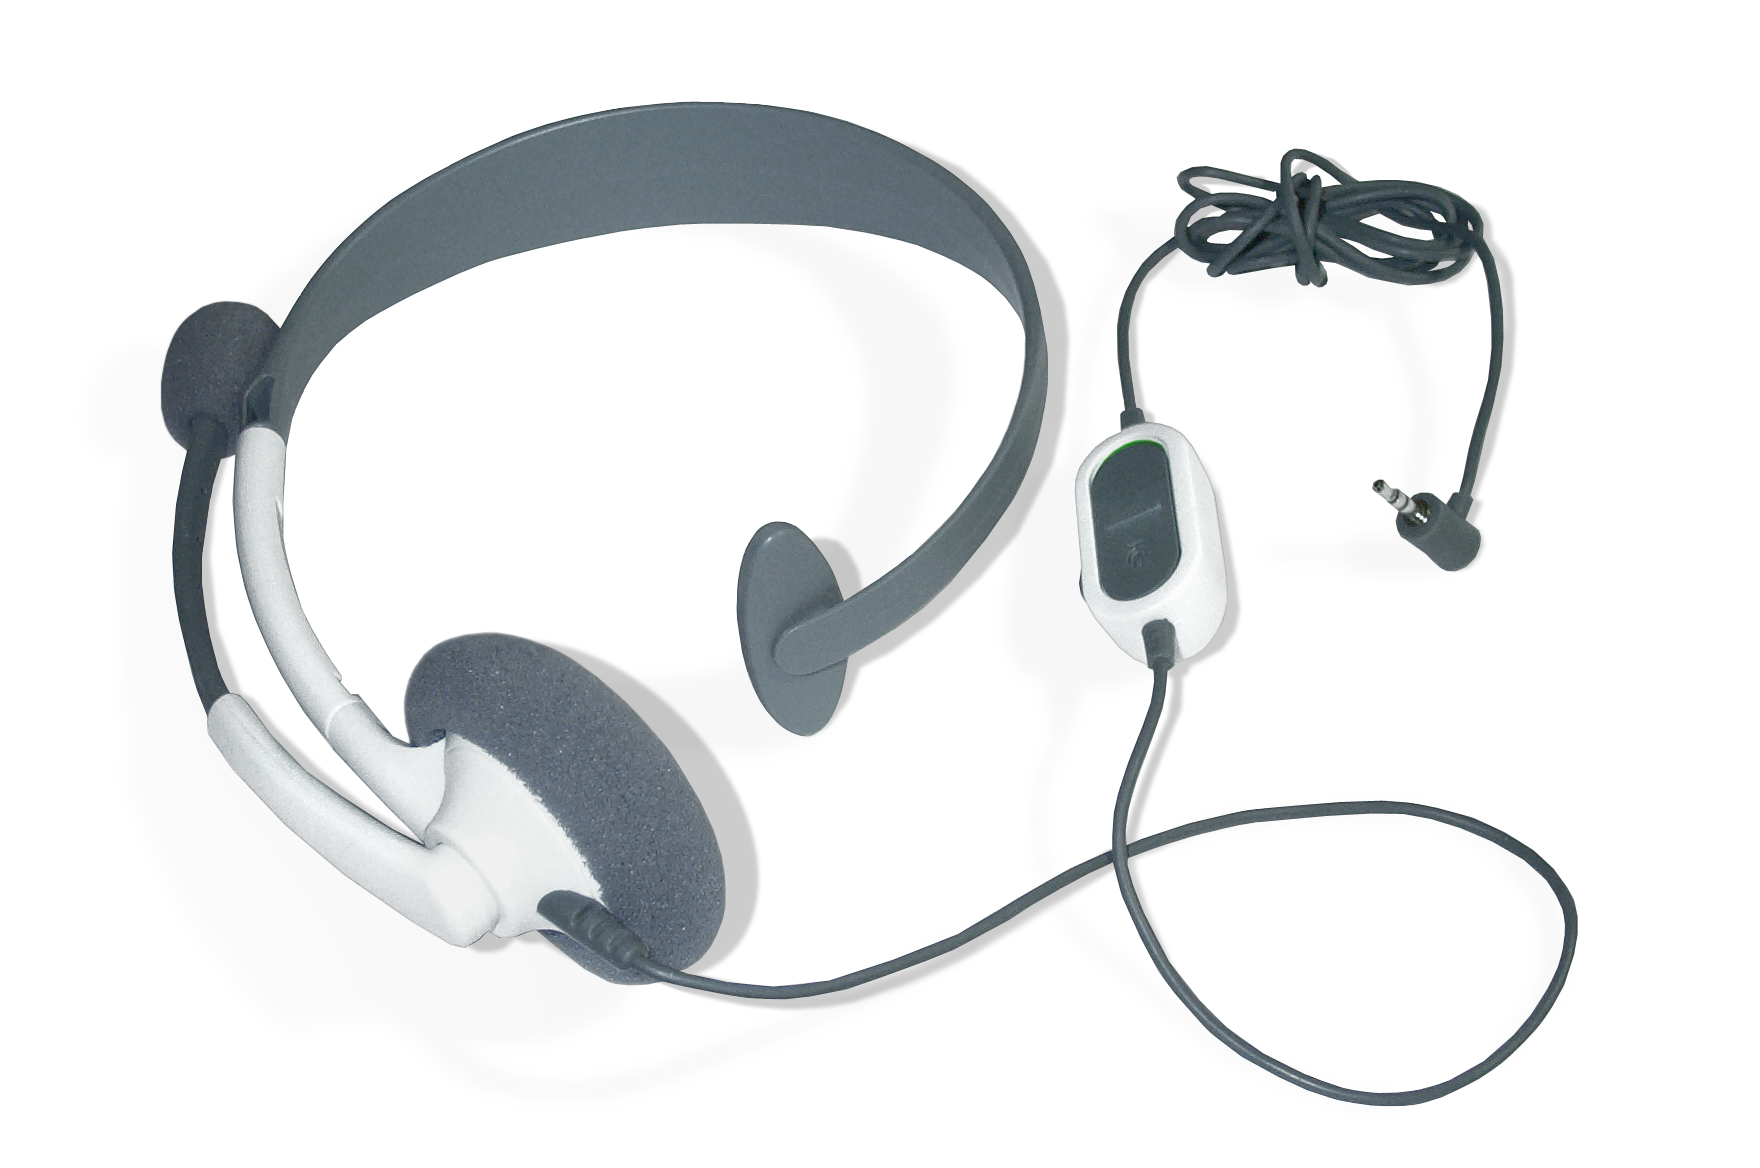 File:360 Wired Headset.png - Wikimedia Commons